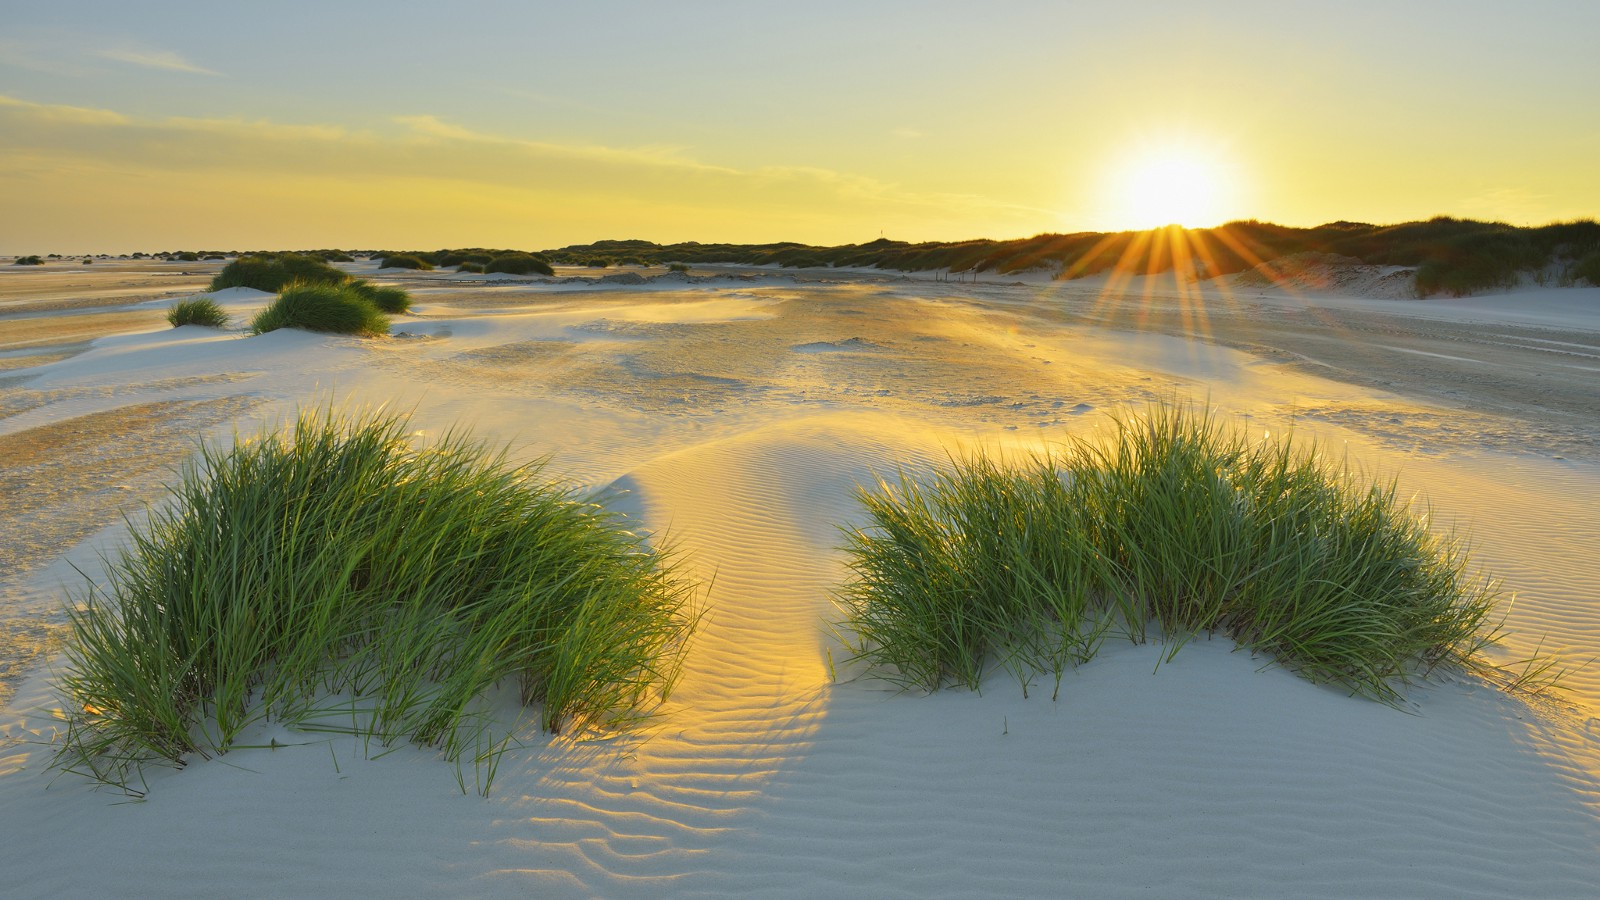 North Sea sandbank in Schleswig-Holstein, Germany